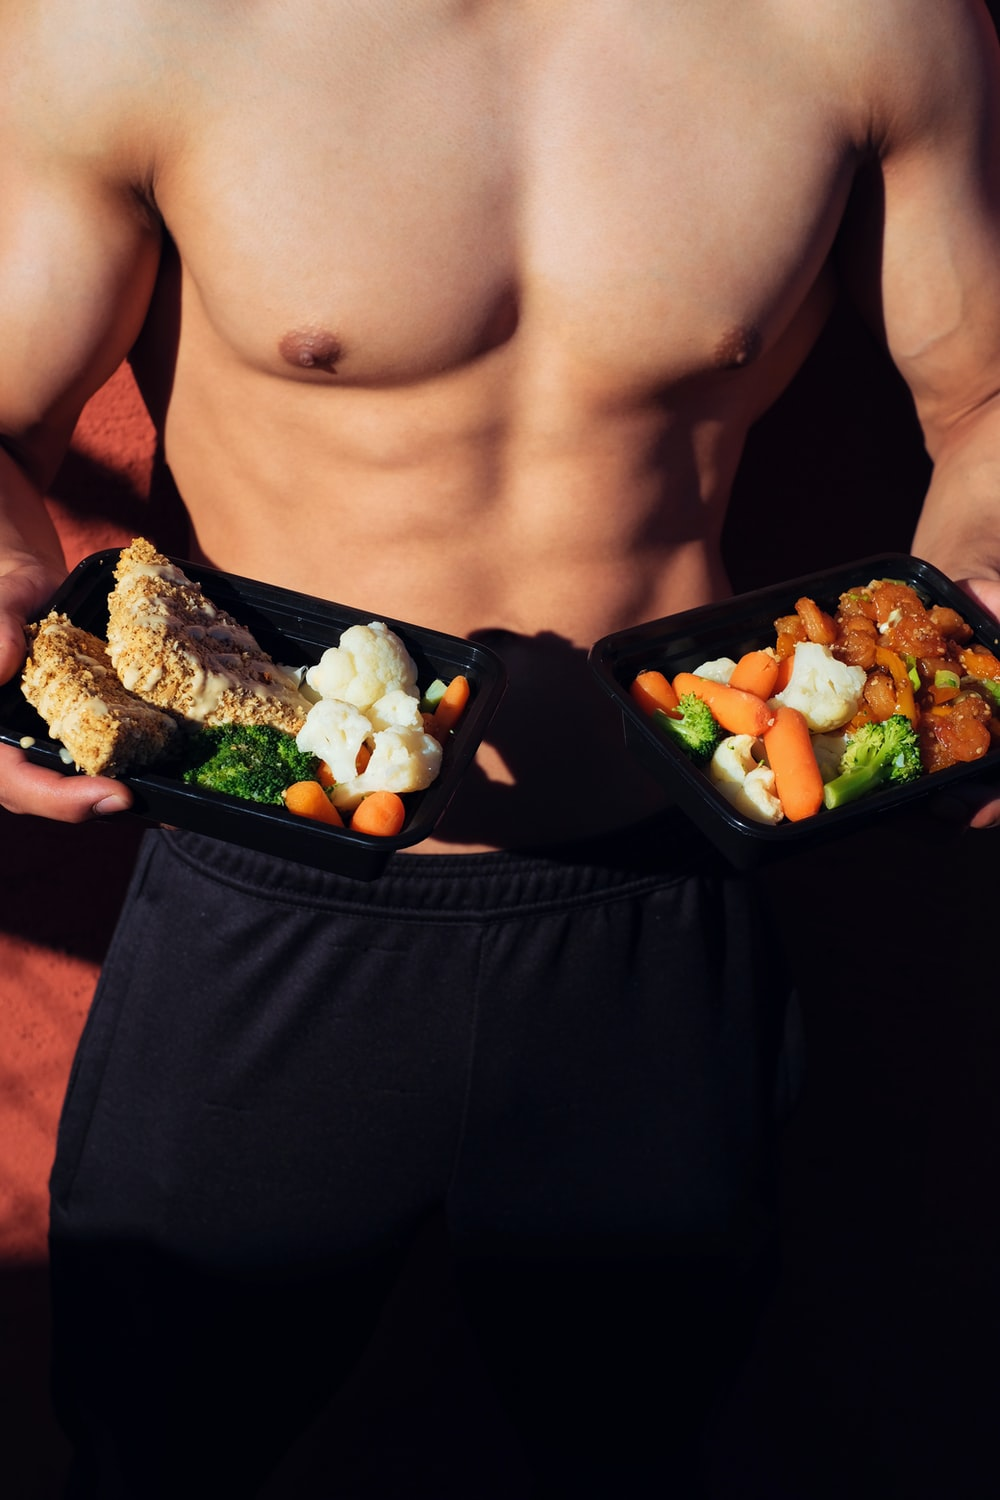 Easy Ways To Gain Healthy Weight